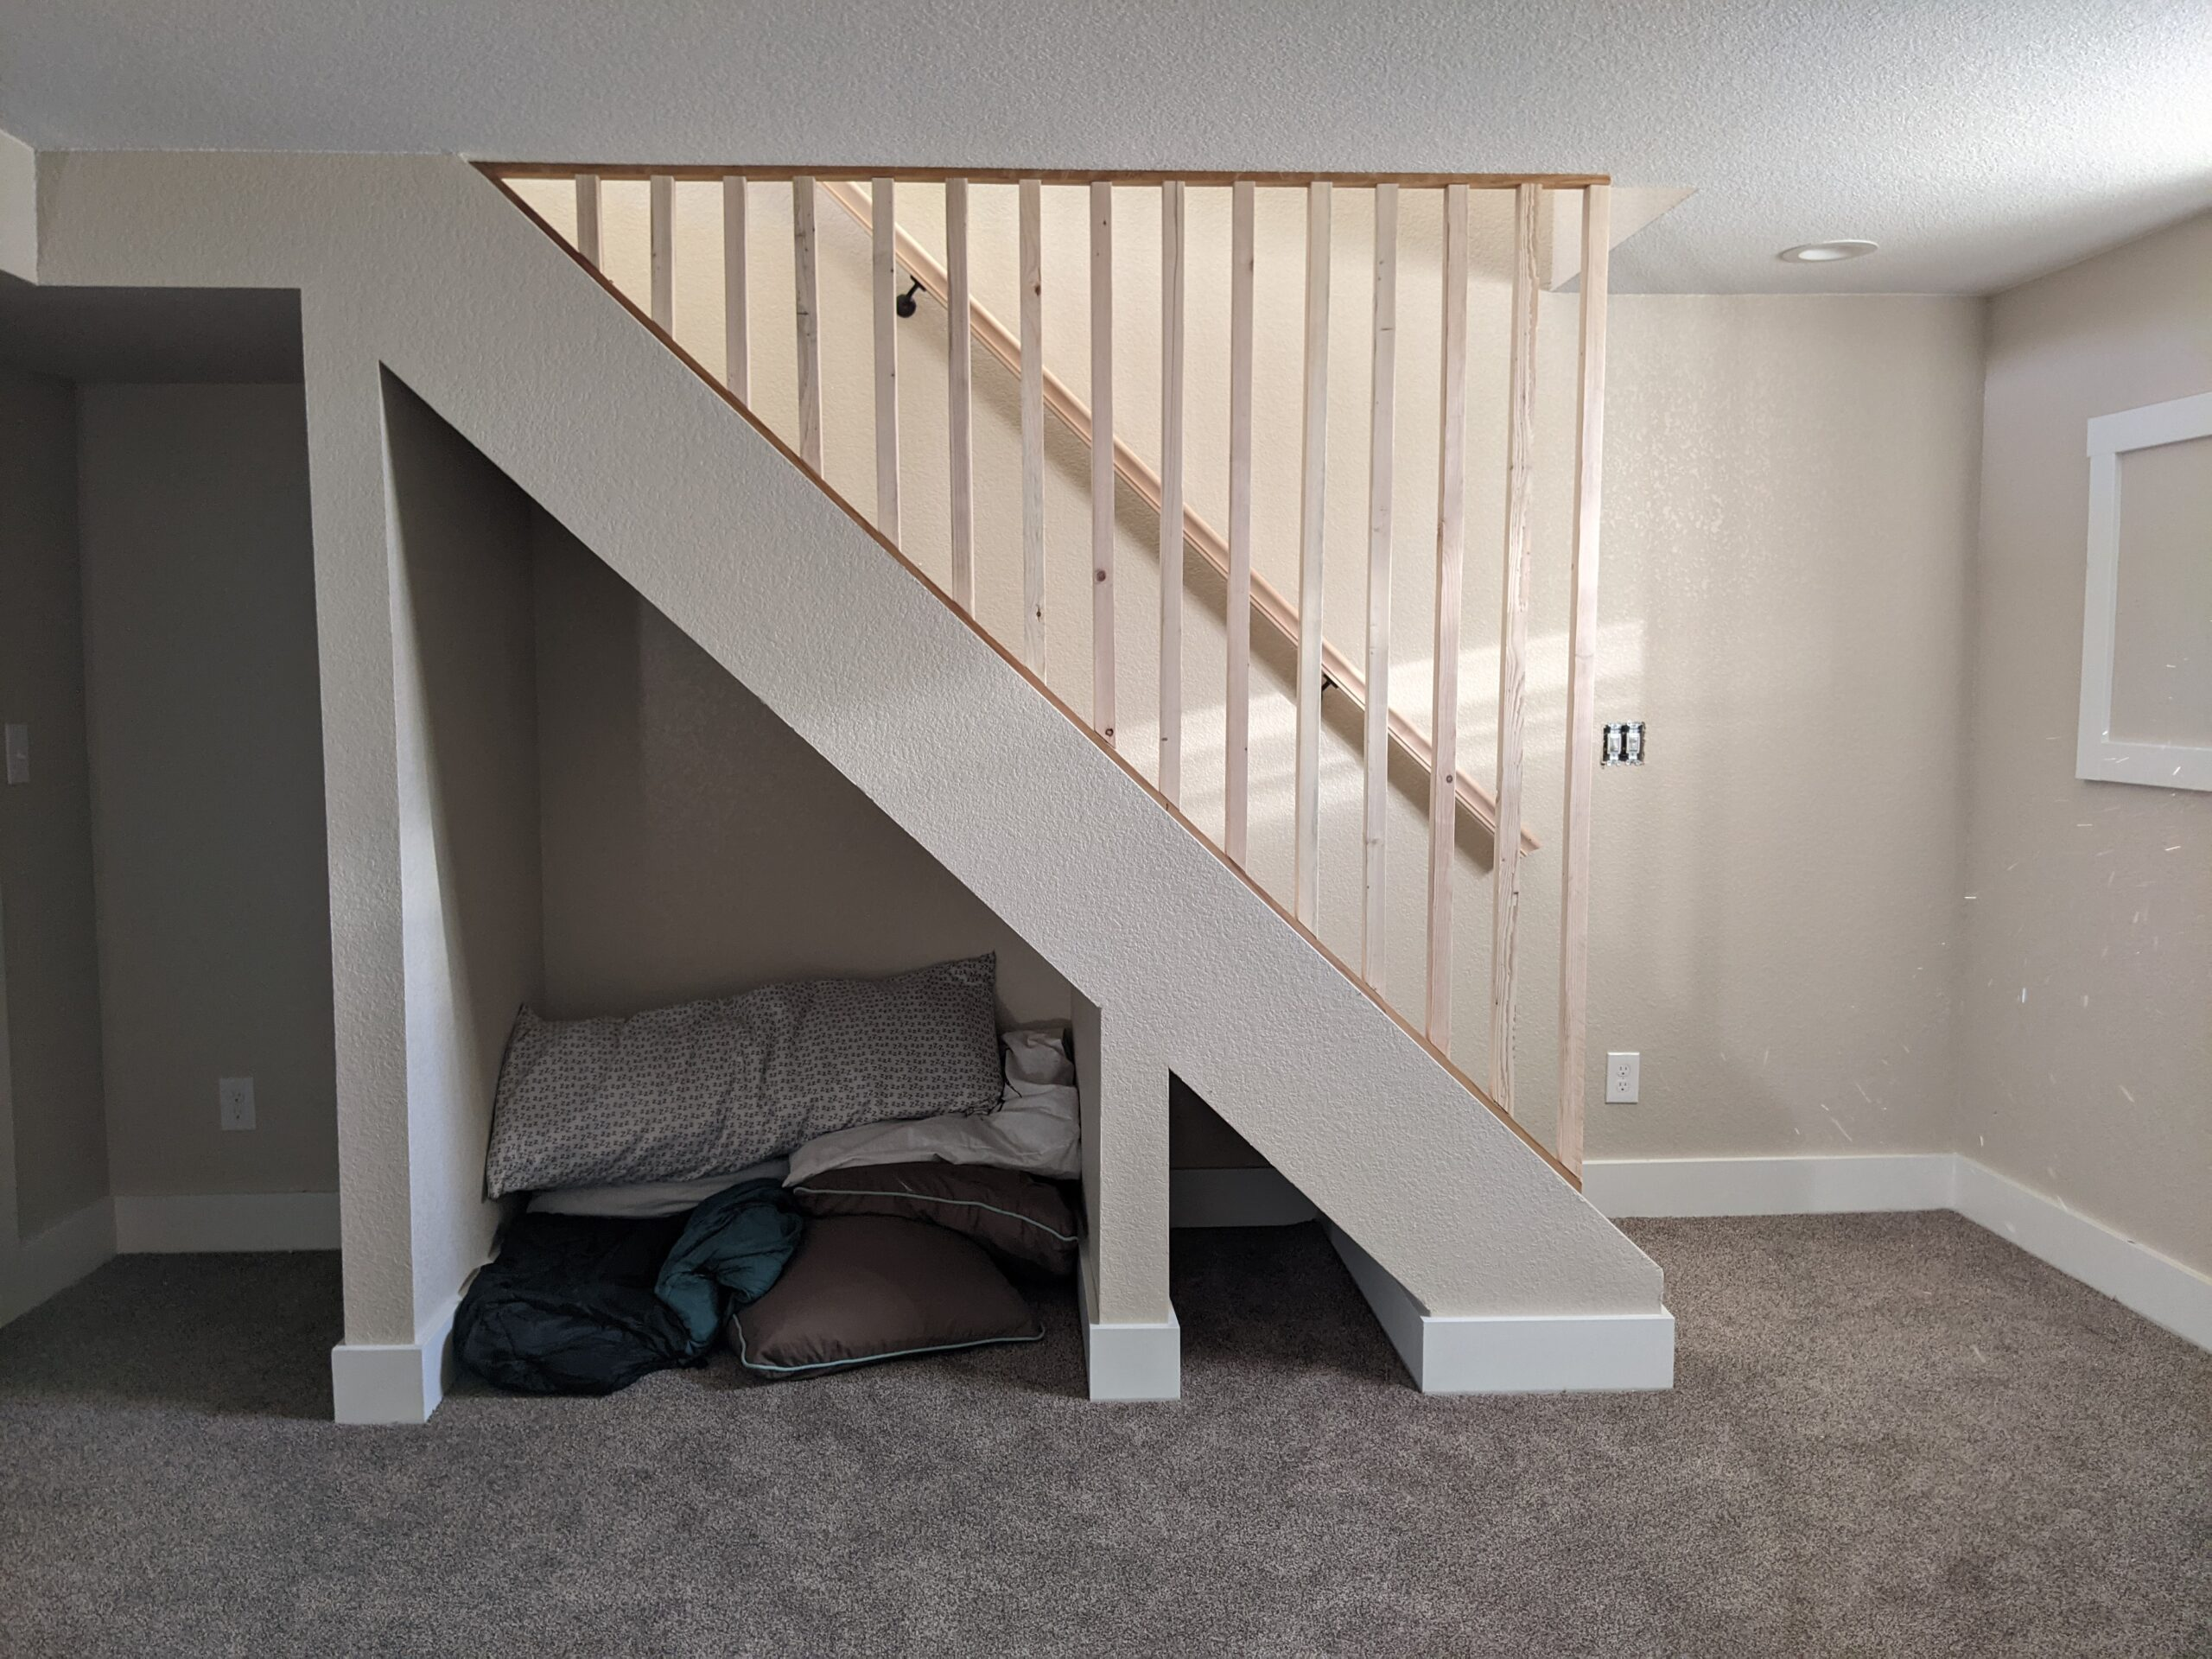 AFTER: We brought more natural light in the basement by lowering the well wall for a small, south-facing basement window. (Notice the light on the wall.) We also built a family room storage space below the stairs on the left and a small, carpeted pet nook on the right.